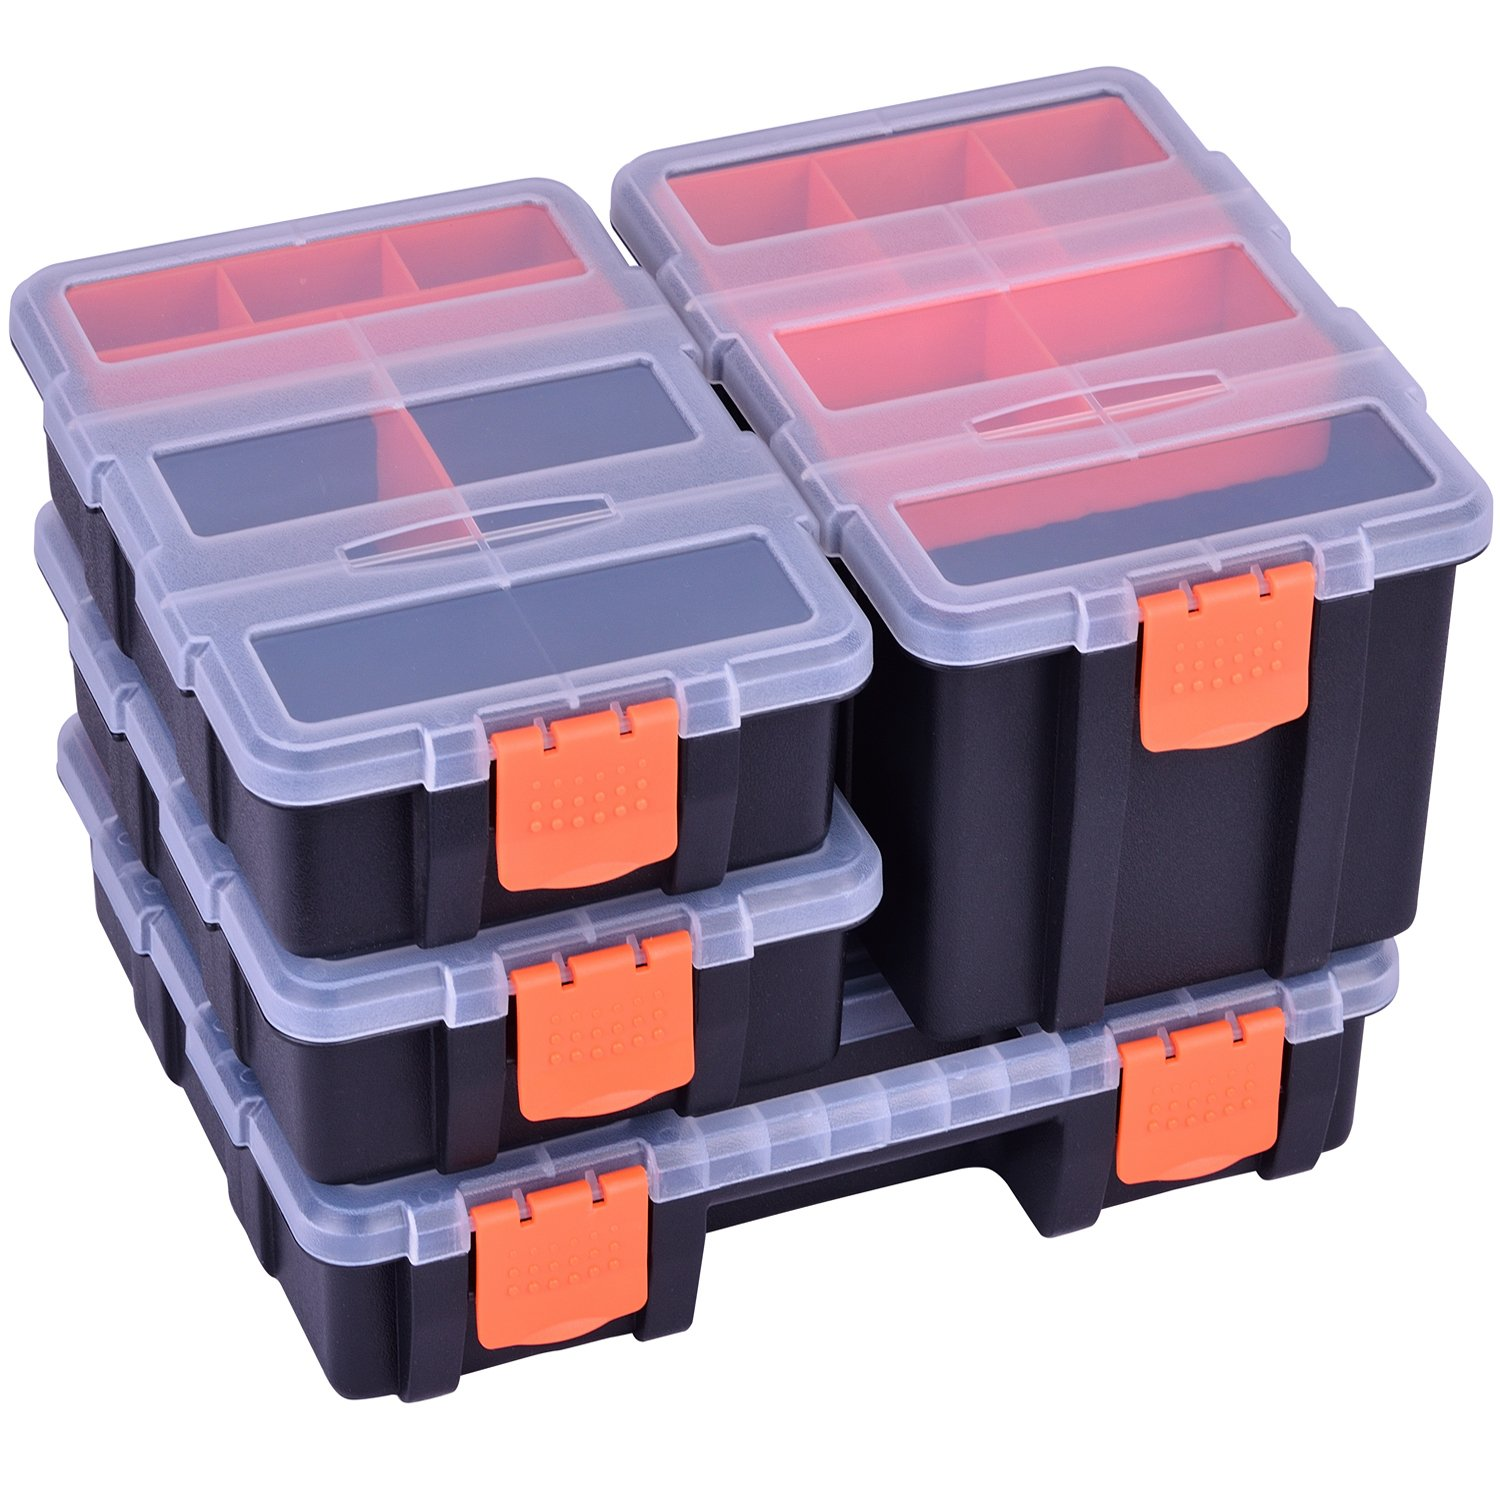 UMI 4 in 1 Tool Organizer Set Multi-purpose Toolbox with Removable Compartments Bins Portable Tool Storage Box for Small Parts with Transparent Lid Black + Orange